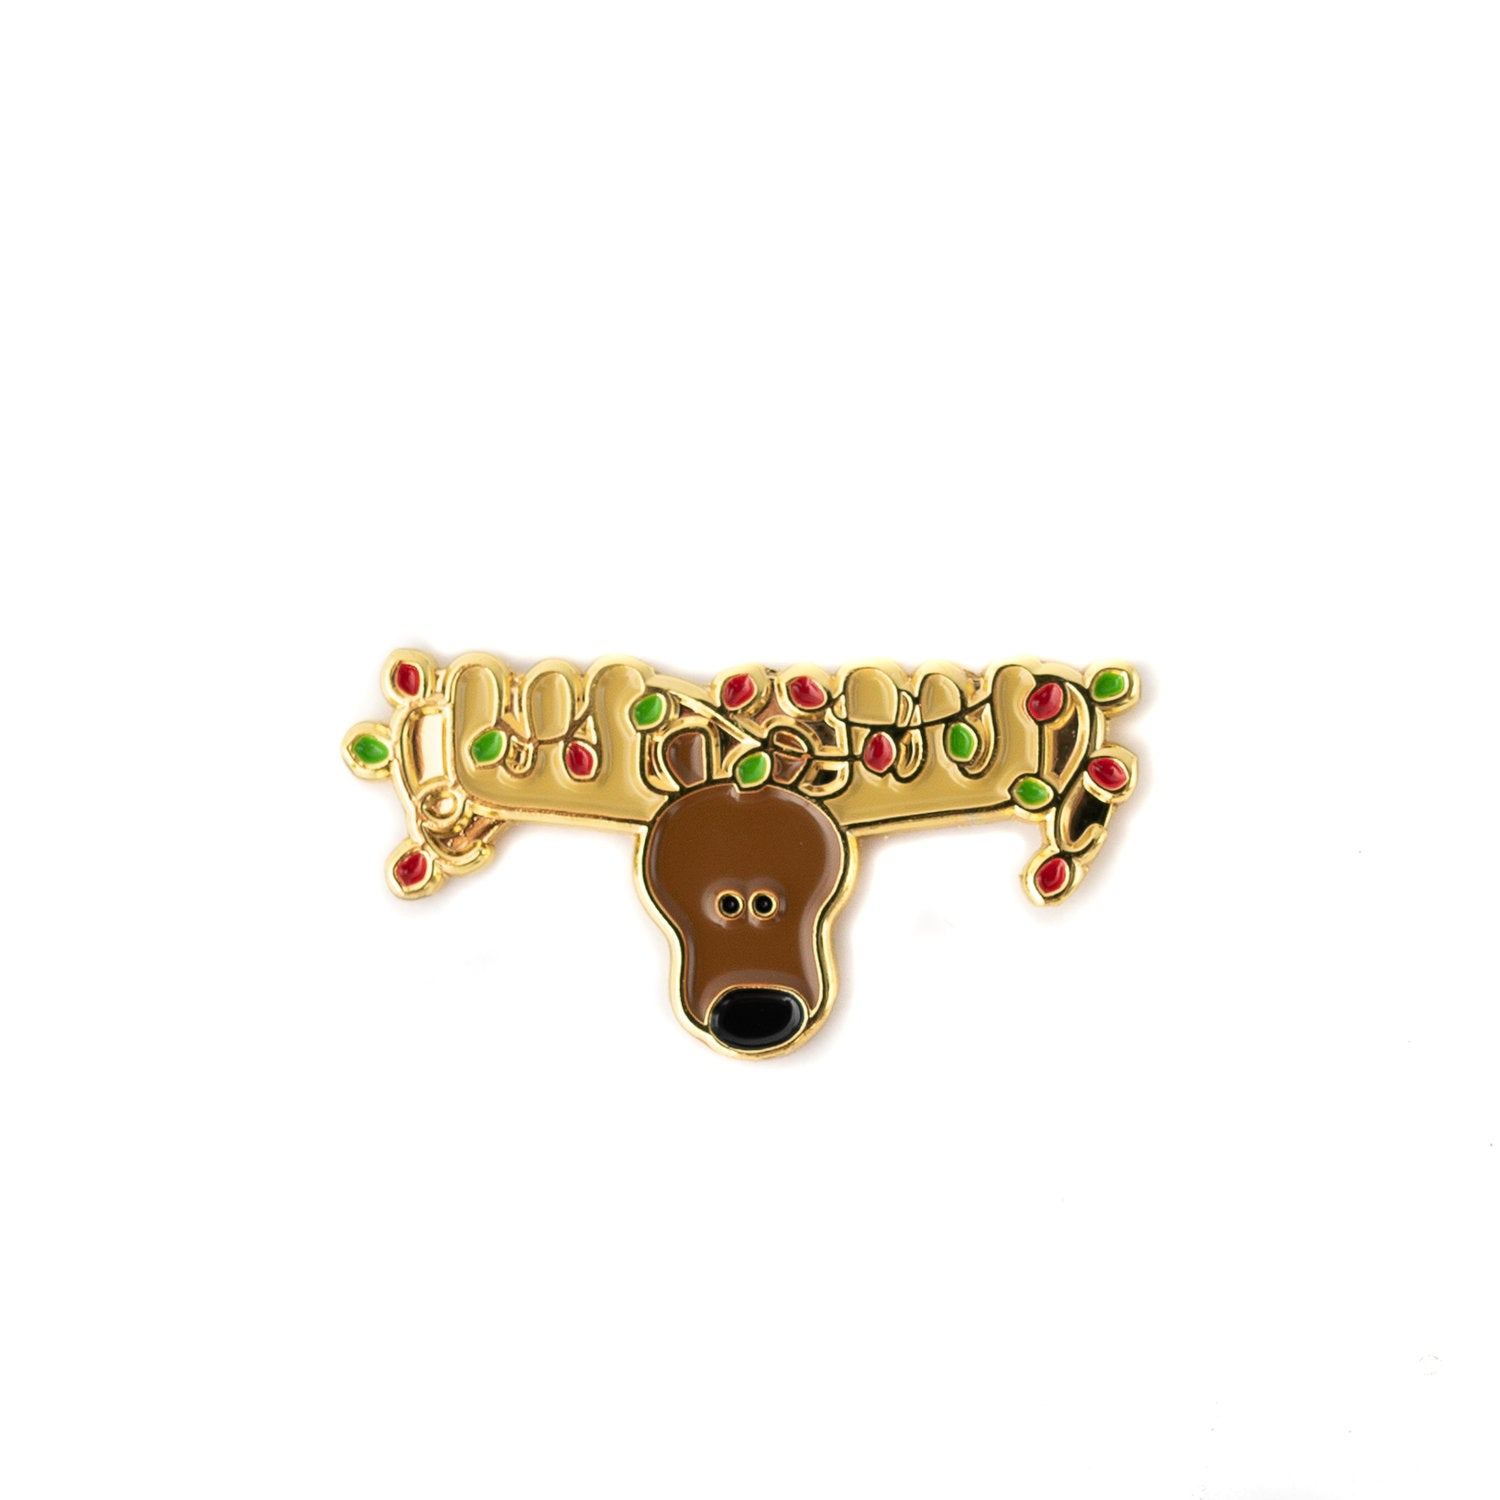 Christmoose enamel pin